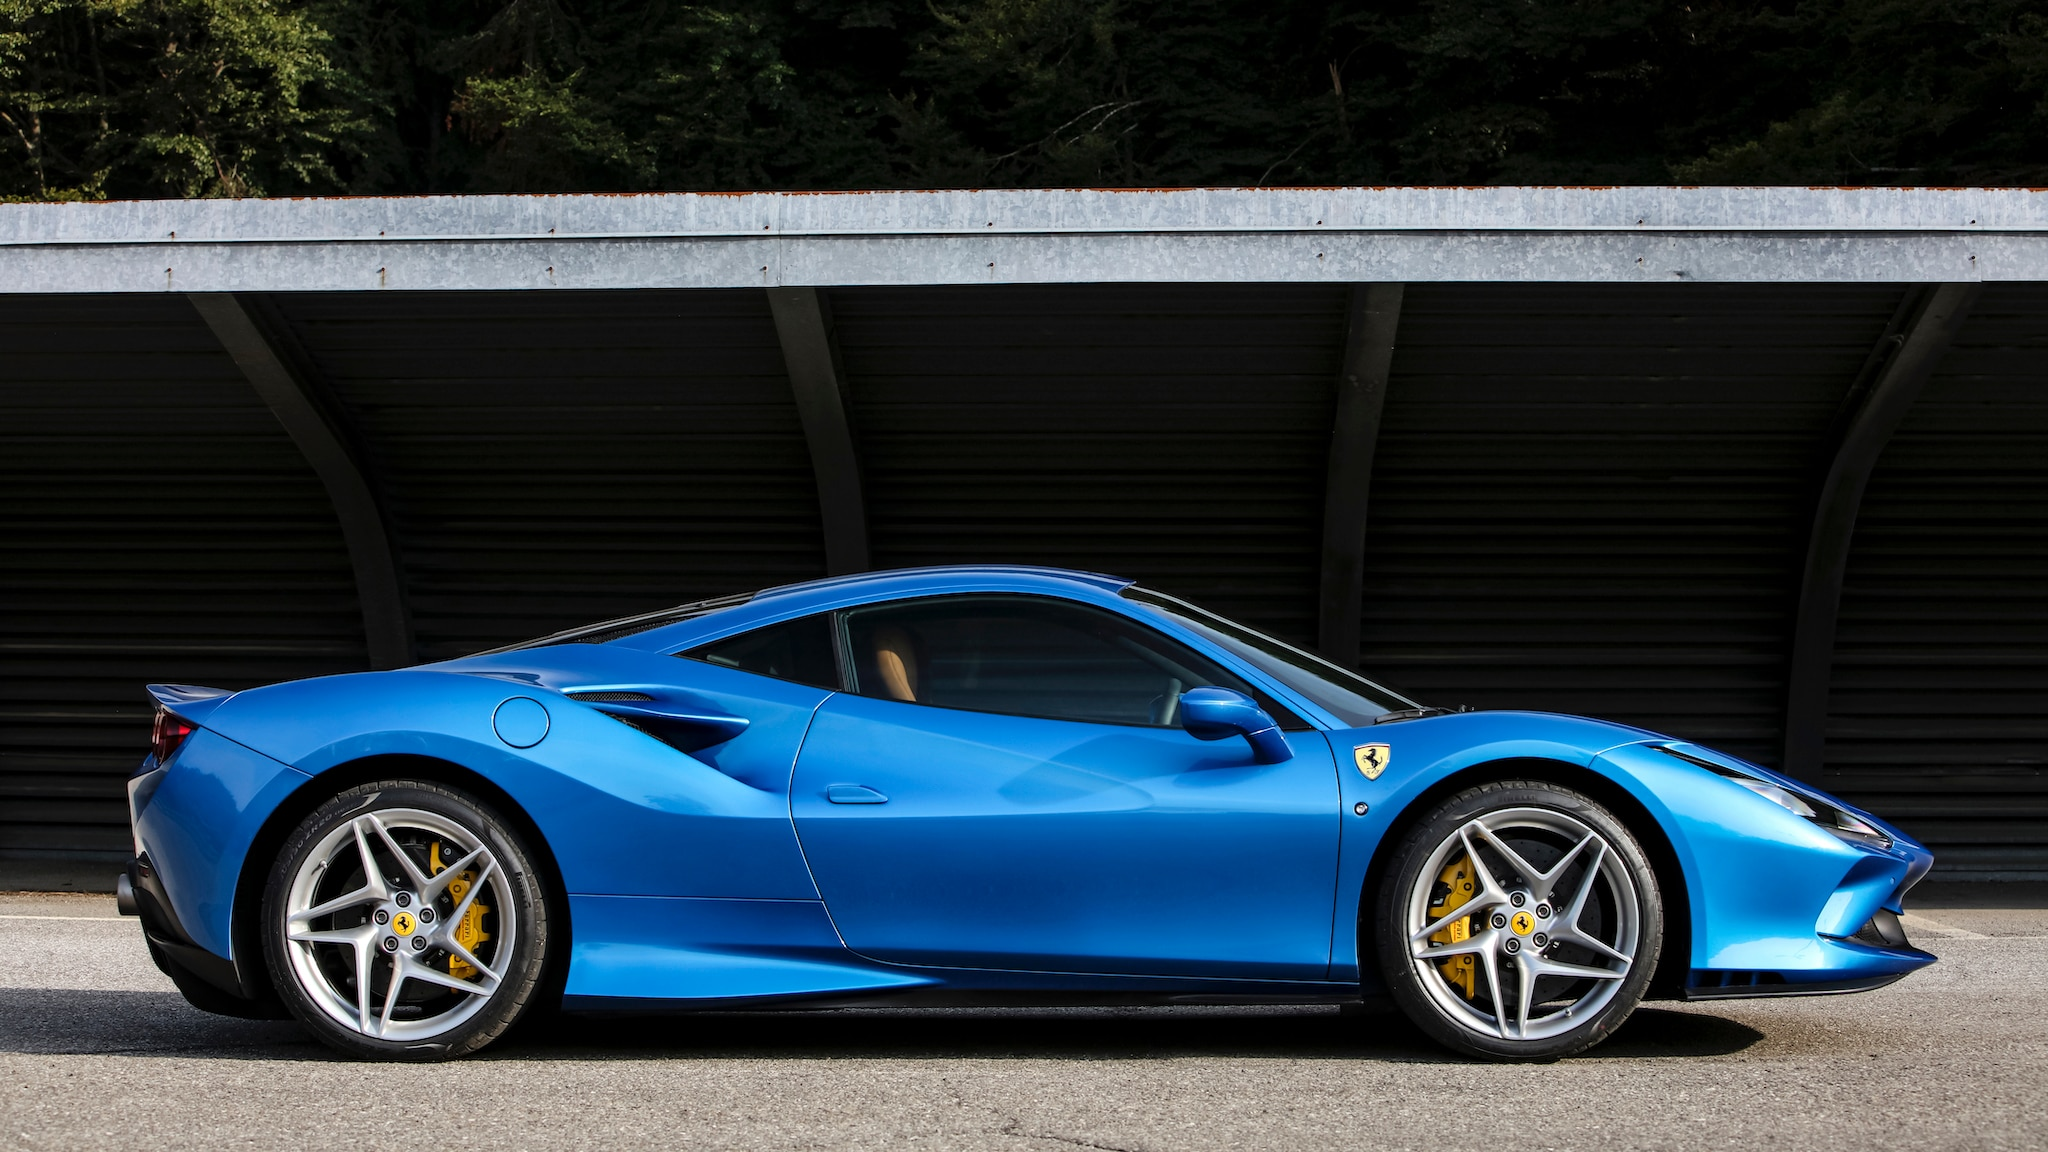 2020 ferrari f8 tributo first drive review: absolutely